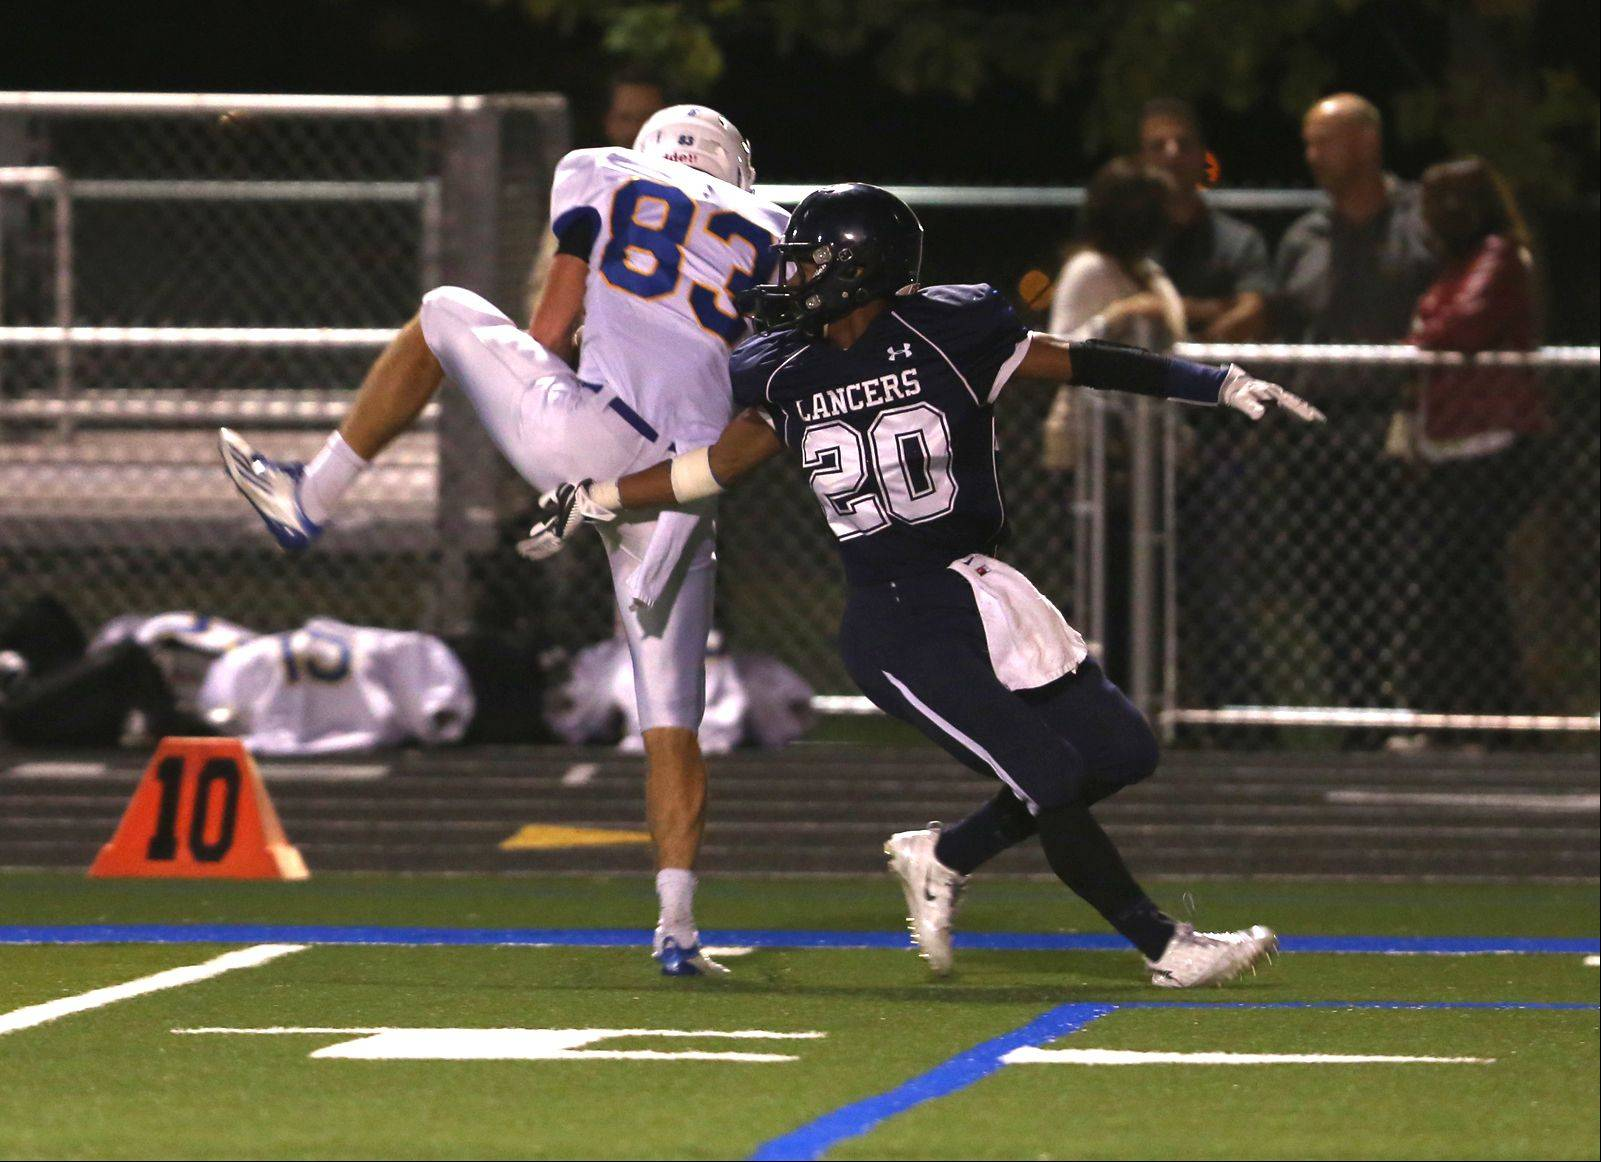 Wheaton North's Matt Biegalski, left, spins for a touchdown catch over Lake Park's Antonio Shenault, right.